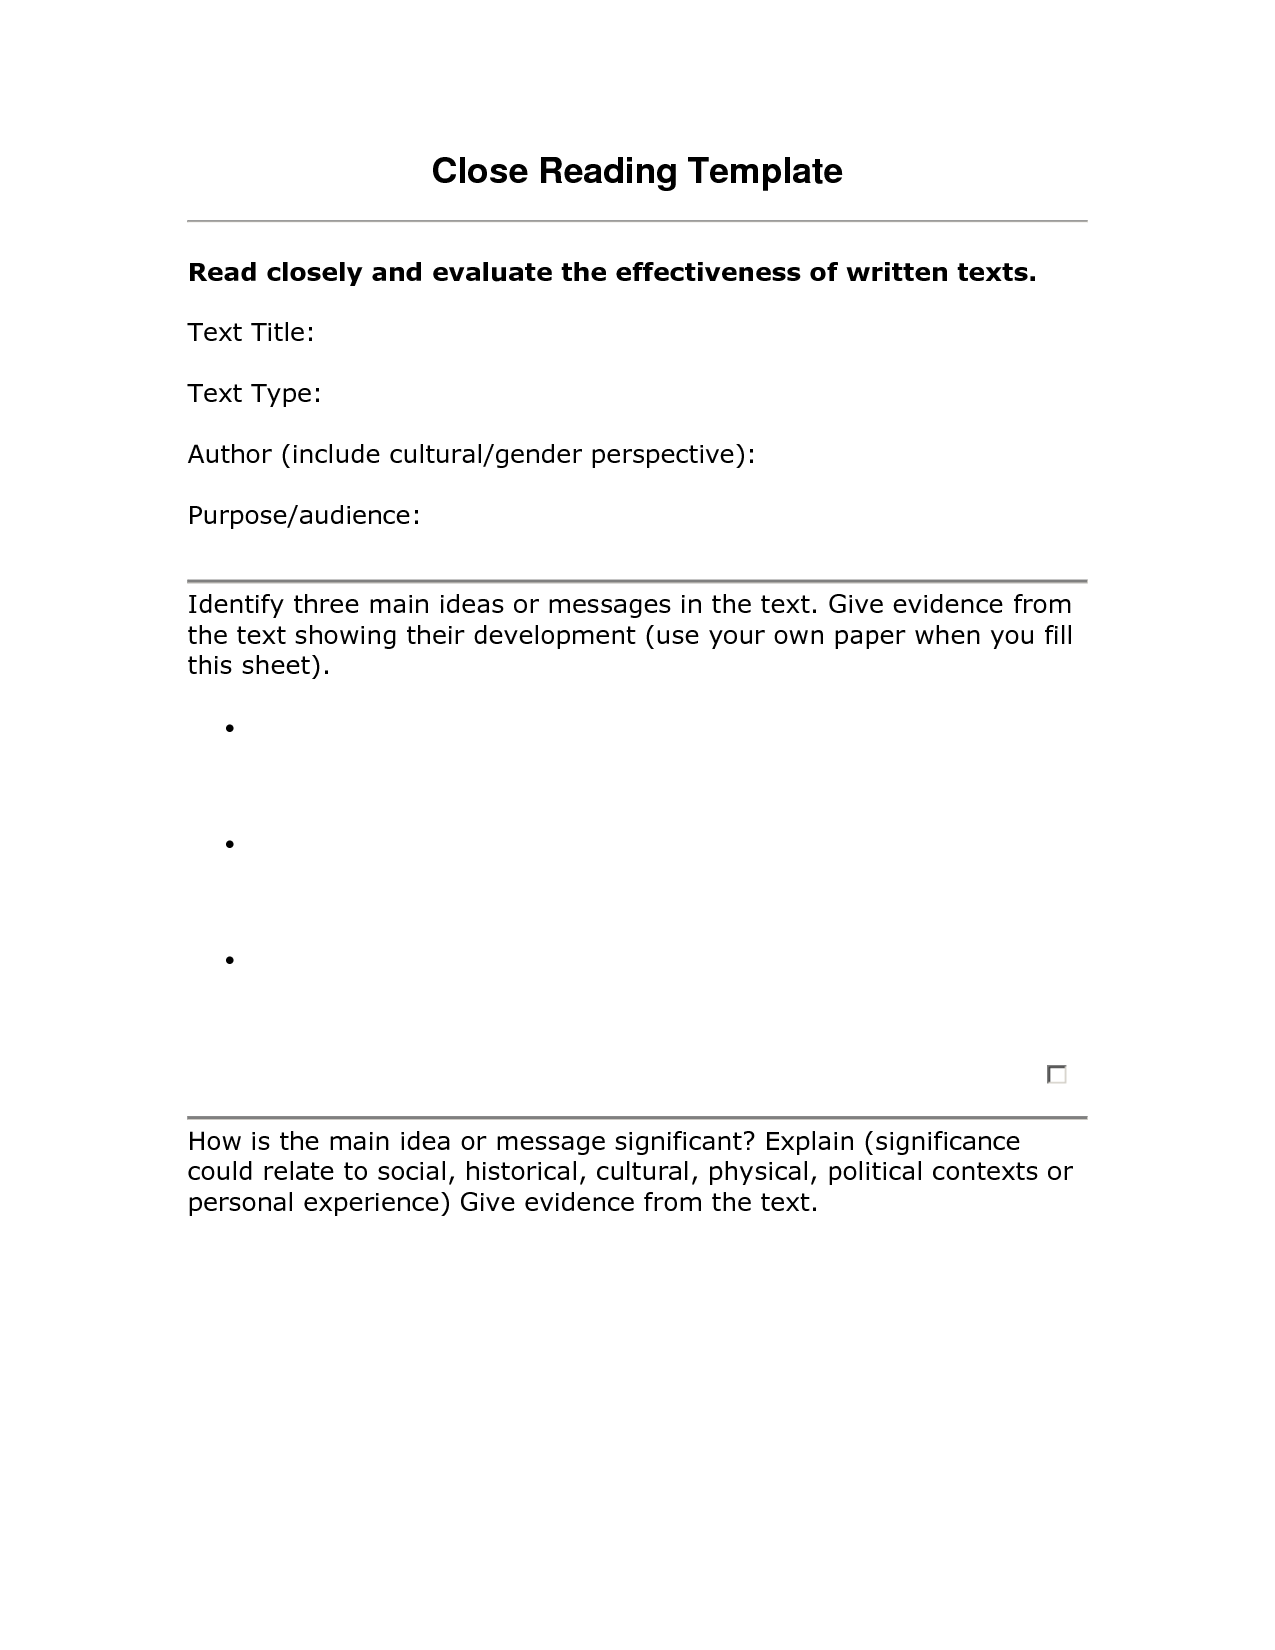 close reading examples close reading template school pinterest